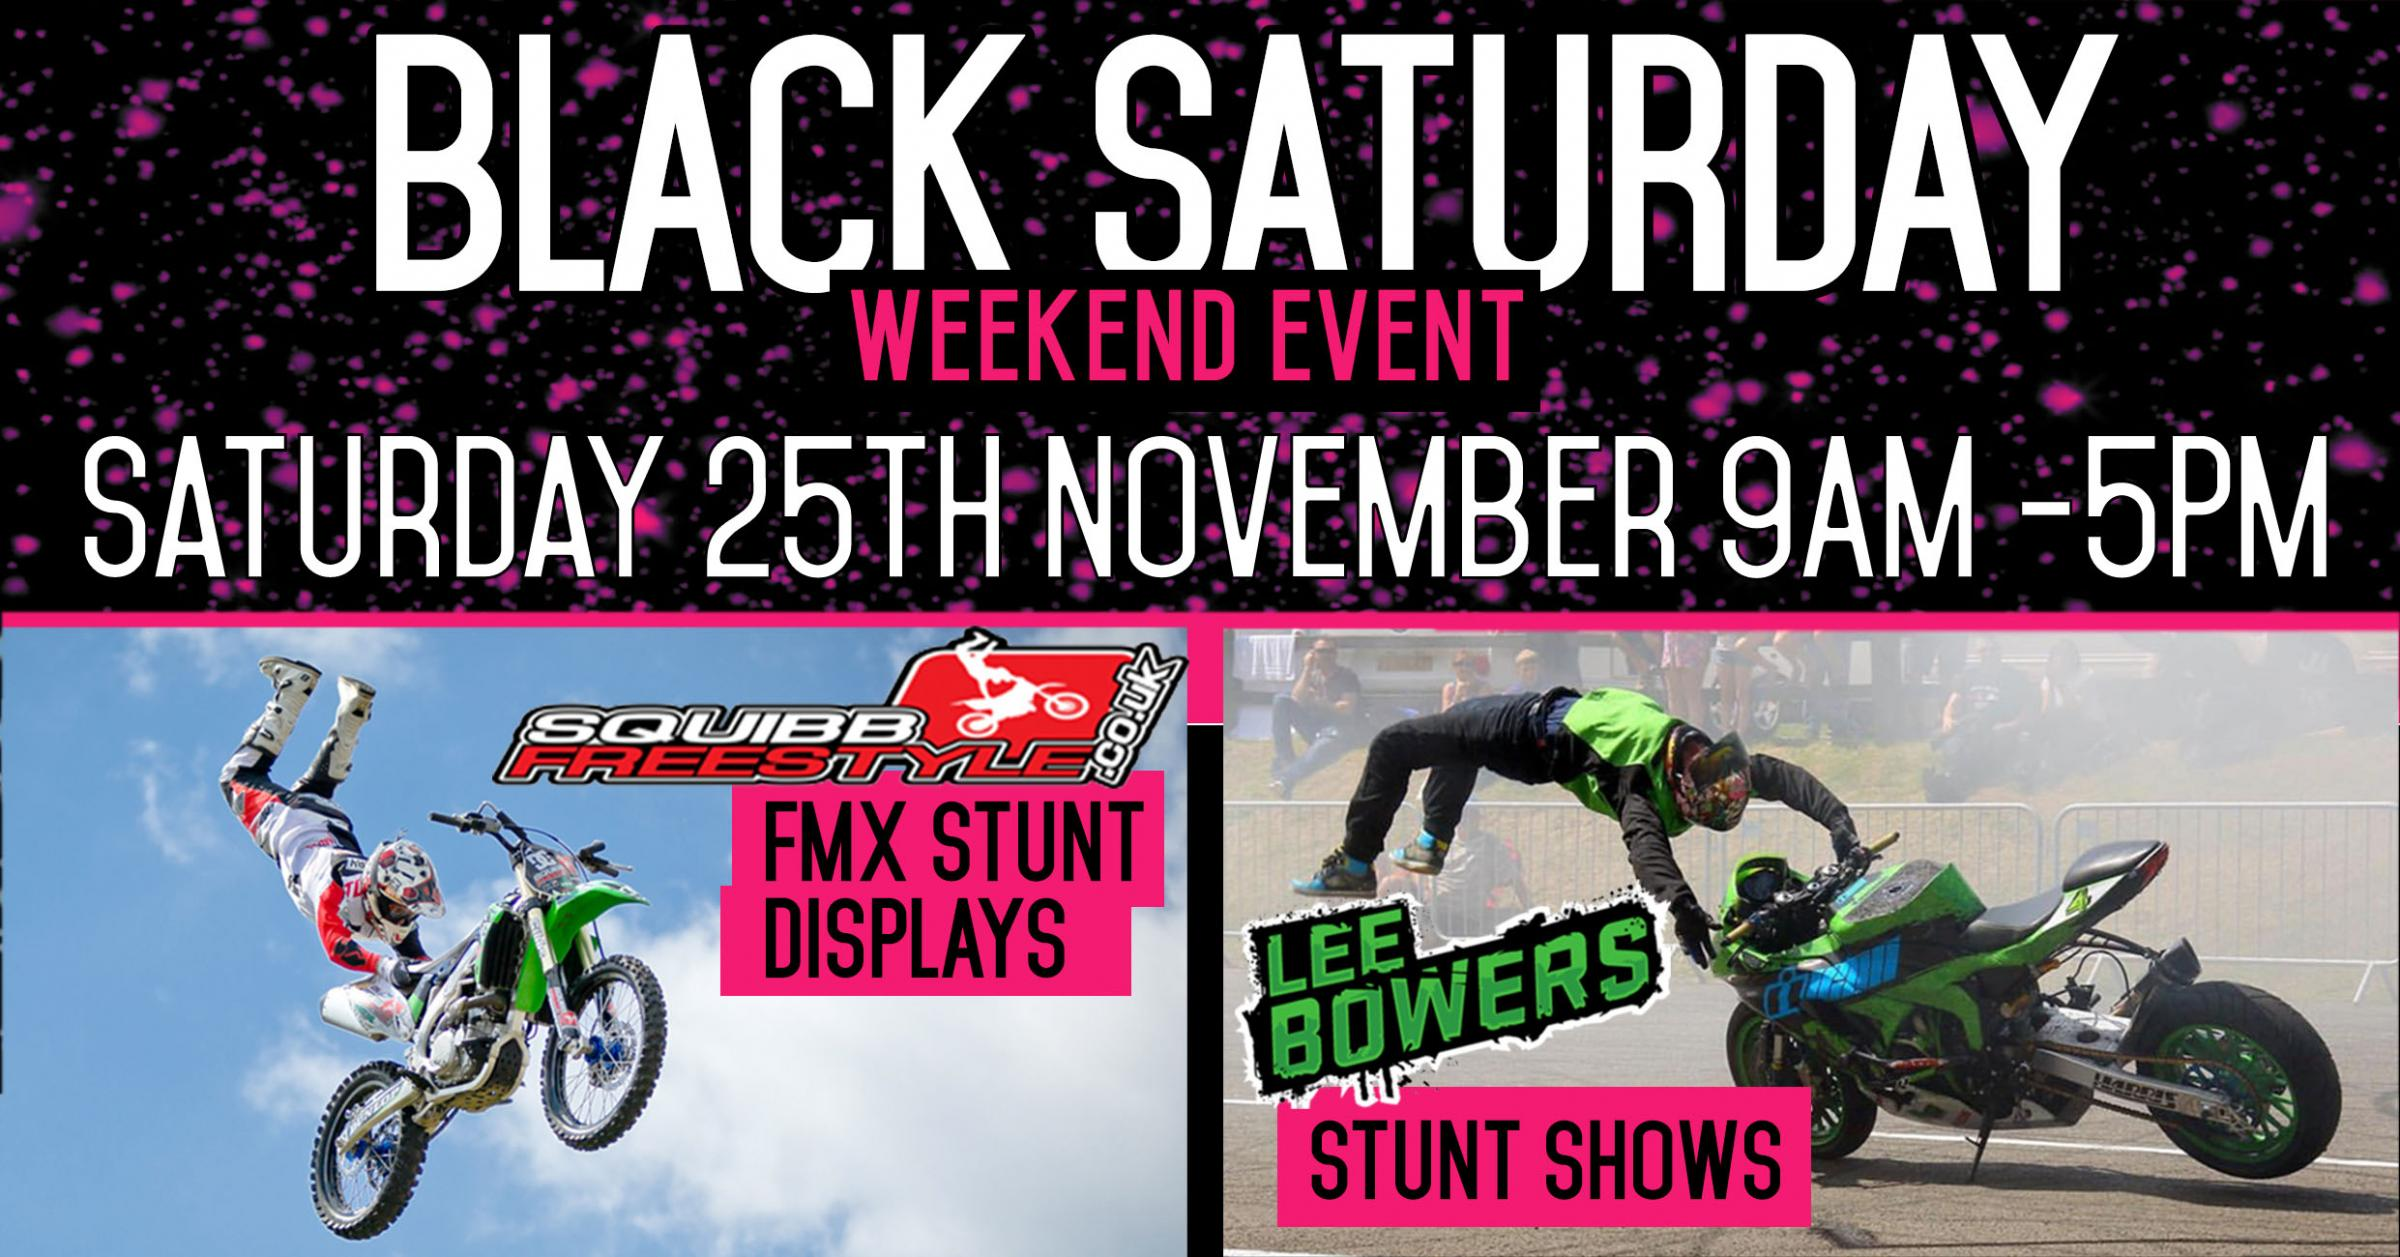 Black Saturday Weekend Event